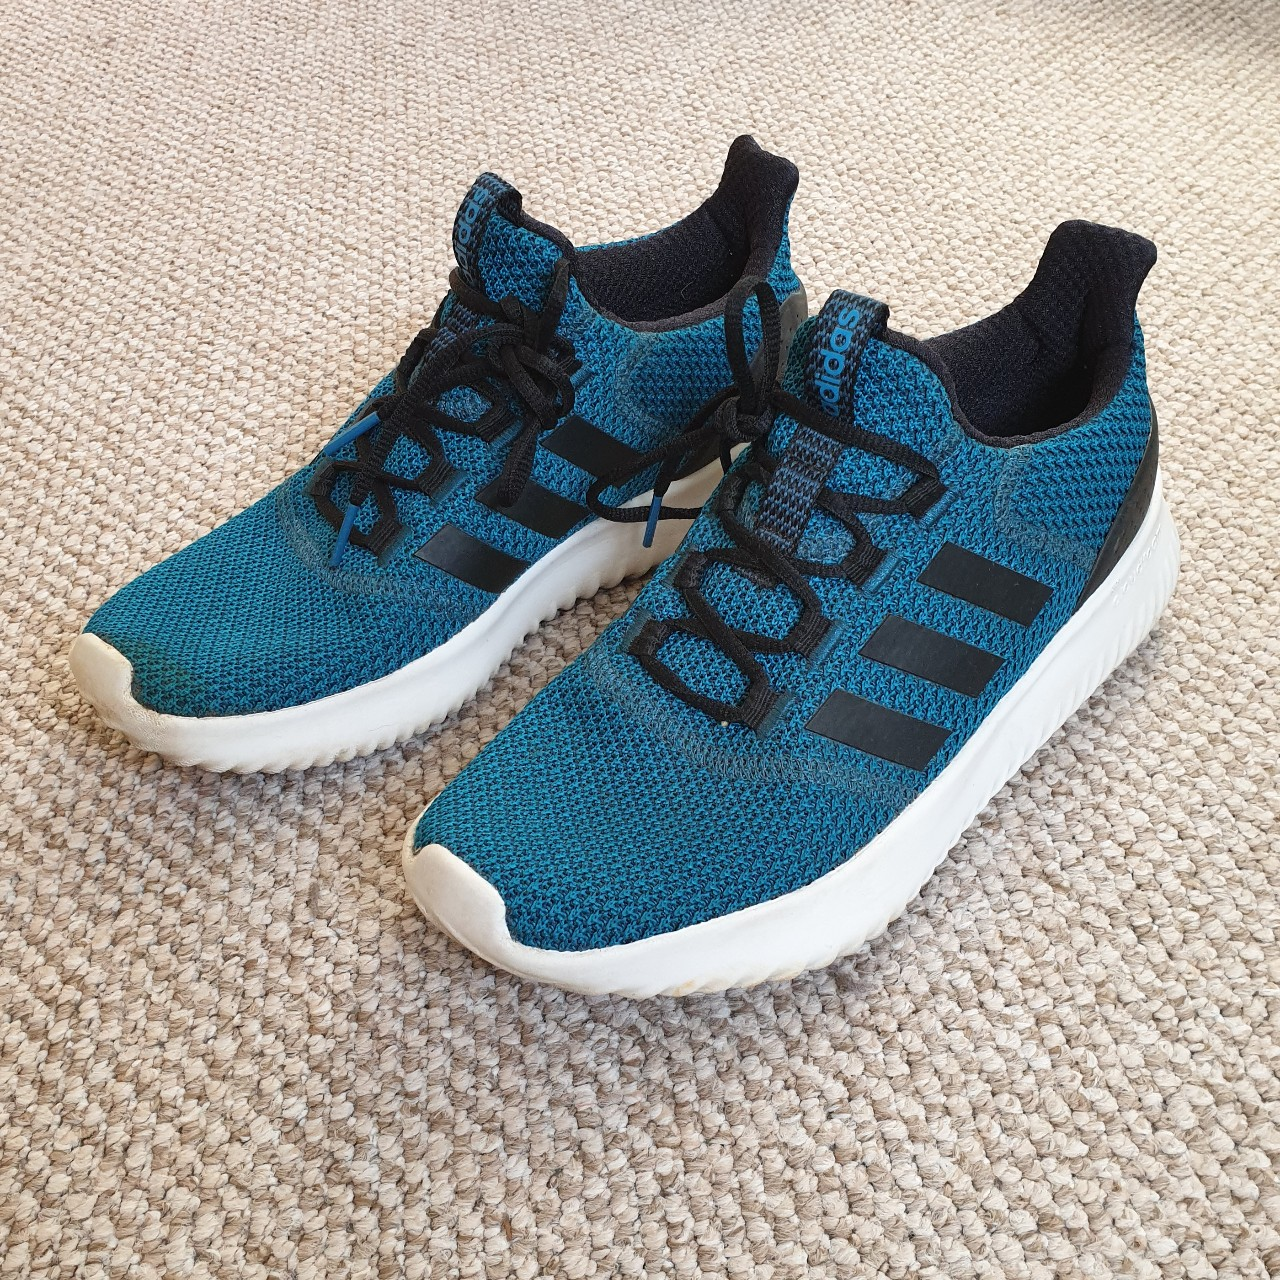 Adidas Neo Cloudfoam Ultimate blue teal trainers Depop